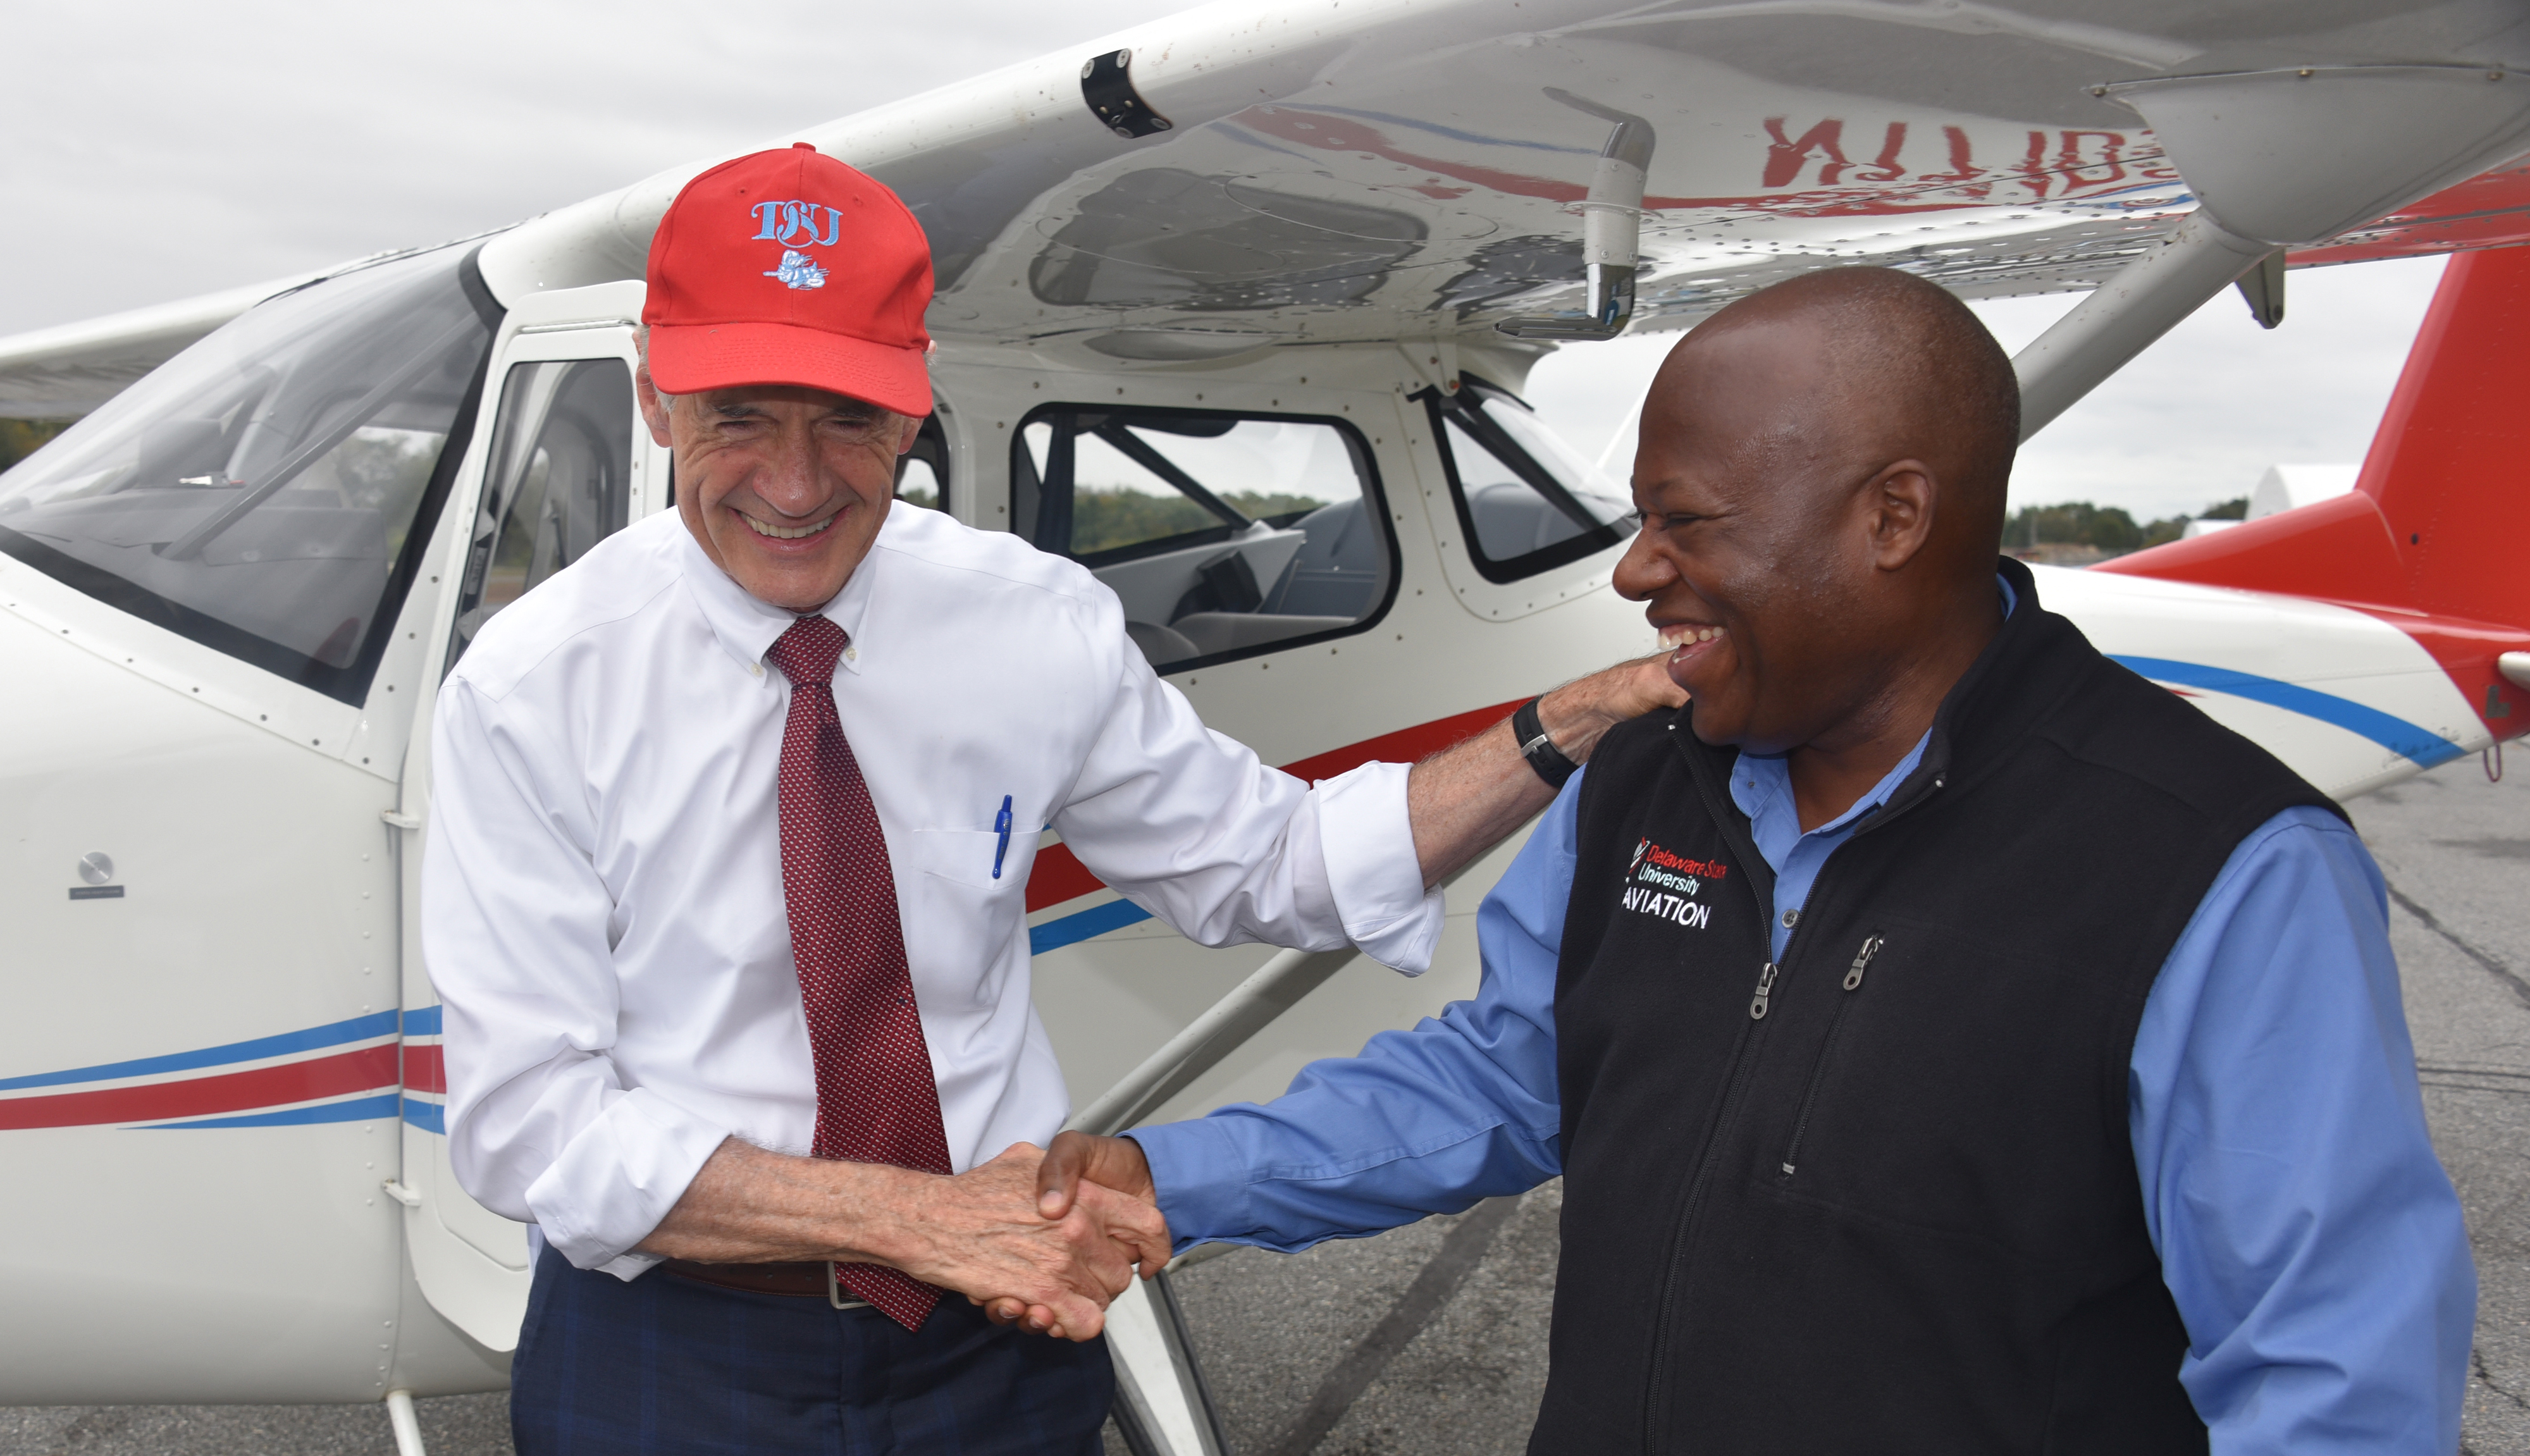 U.S. Sen. Tom Carper shakes hands with Lt. Col. Michael Hales, director of the University's Aviation Program, after the elected official flew one of the new planes recently acquired by Del State. Sen. Carper is a former naval aviator.